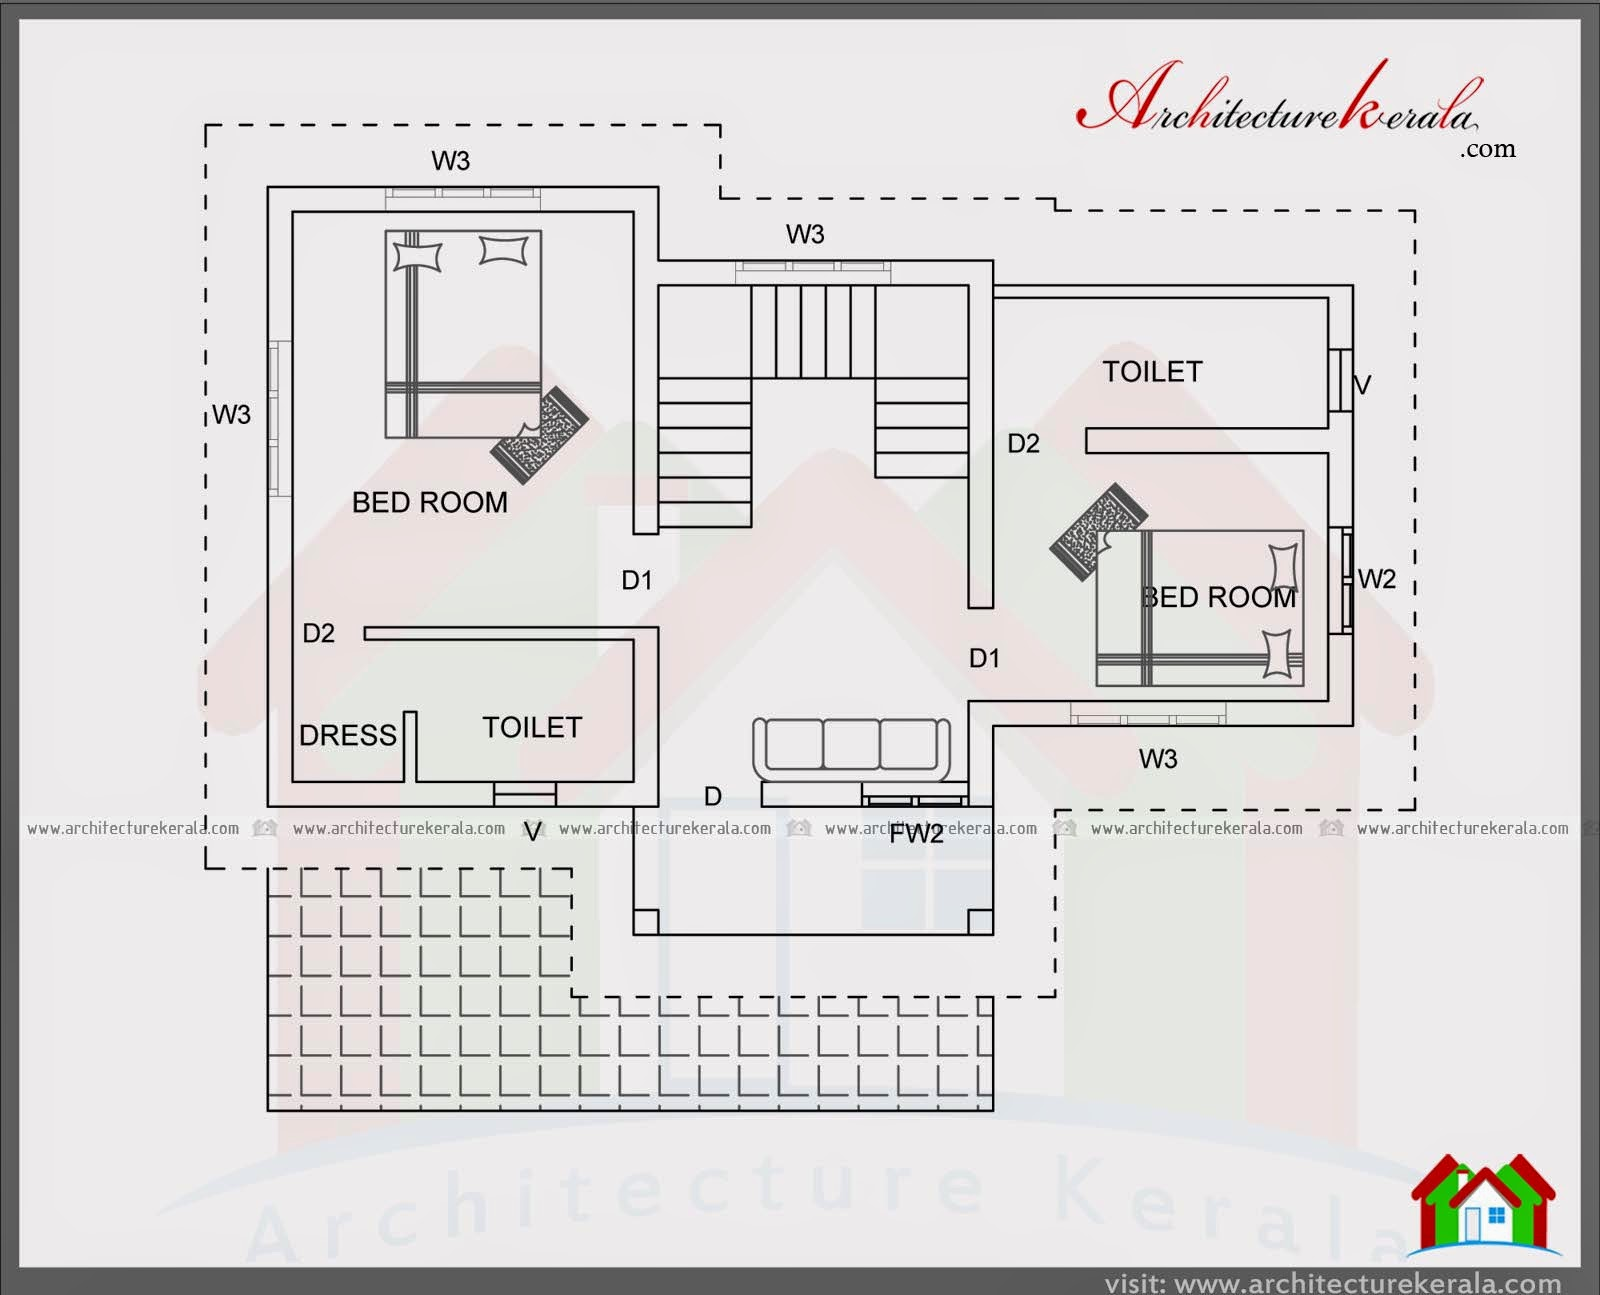 House Plans Less Than 1500 Square Feet House Plans Less Than 2500 Square Feet